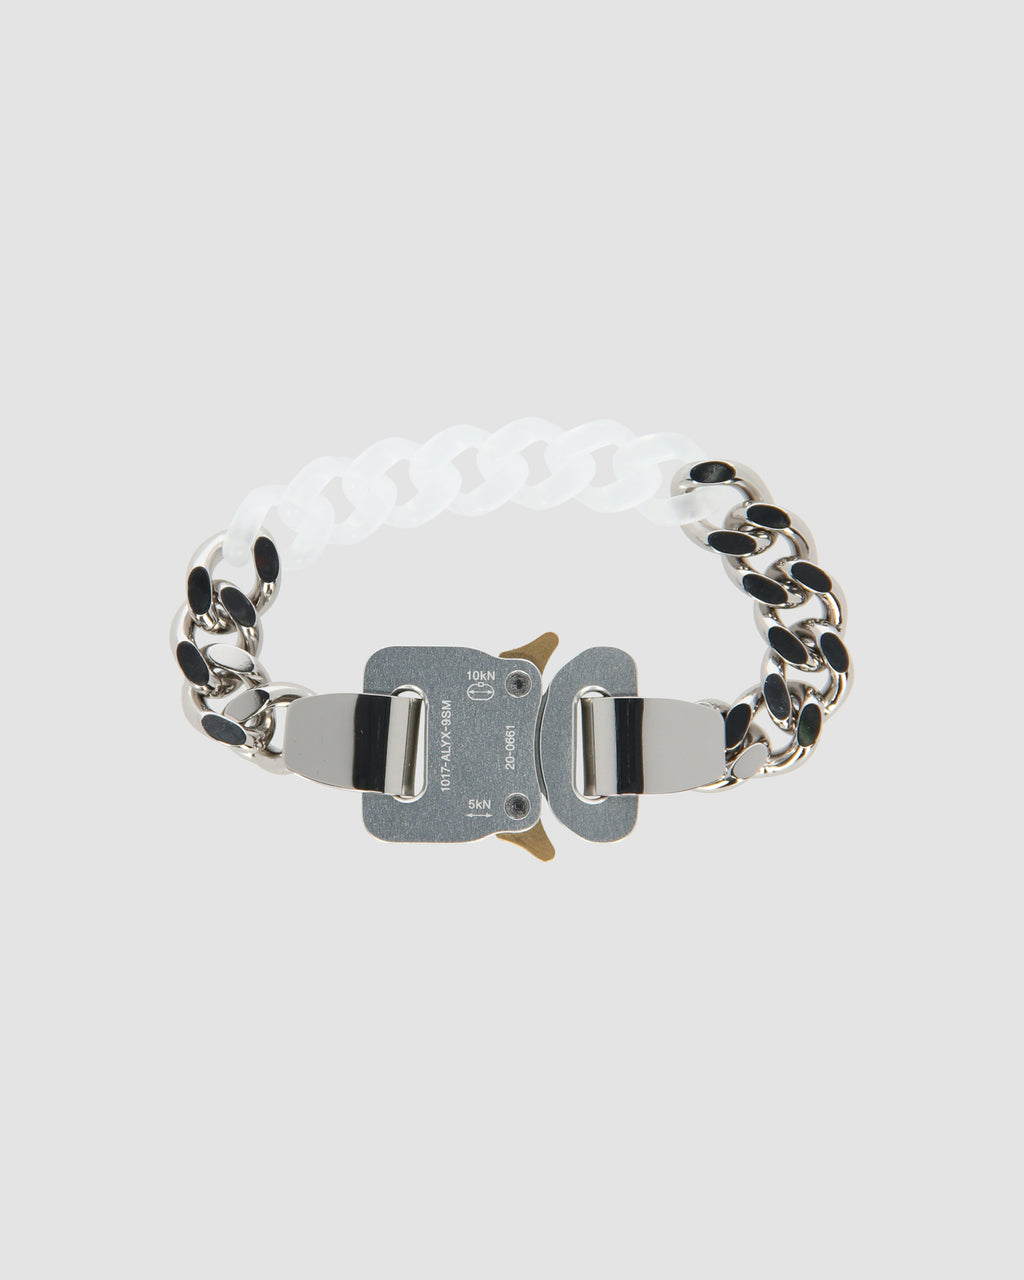 METAL AND NYLON CHAIN BRACELET